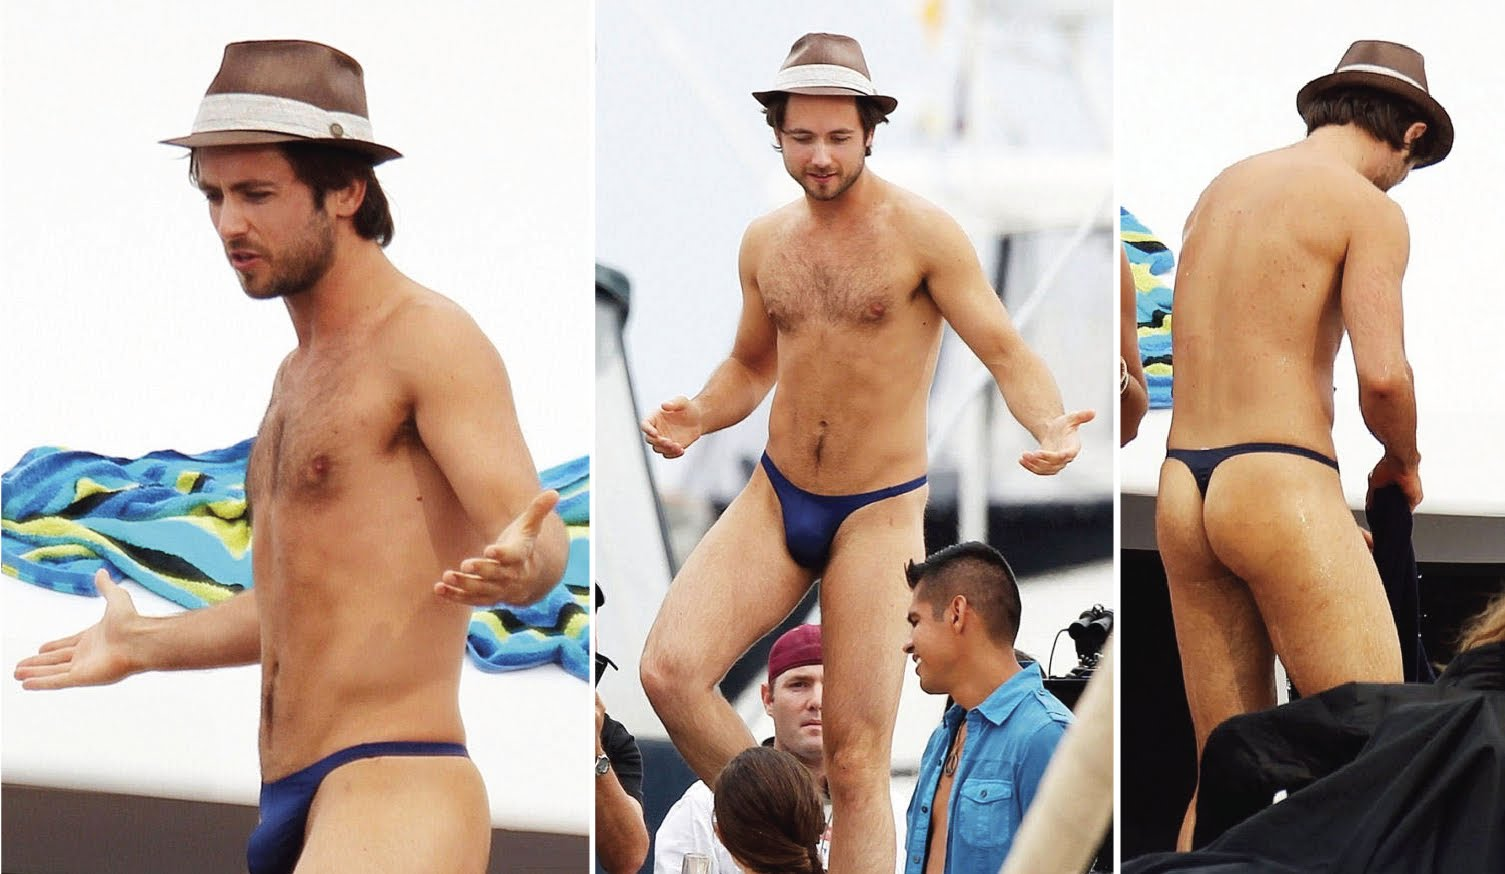 Justin chatwin naked #12